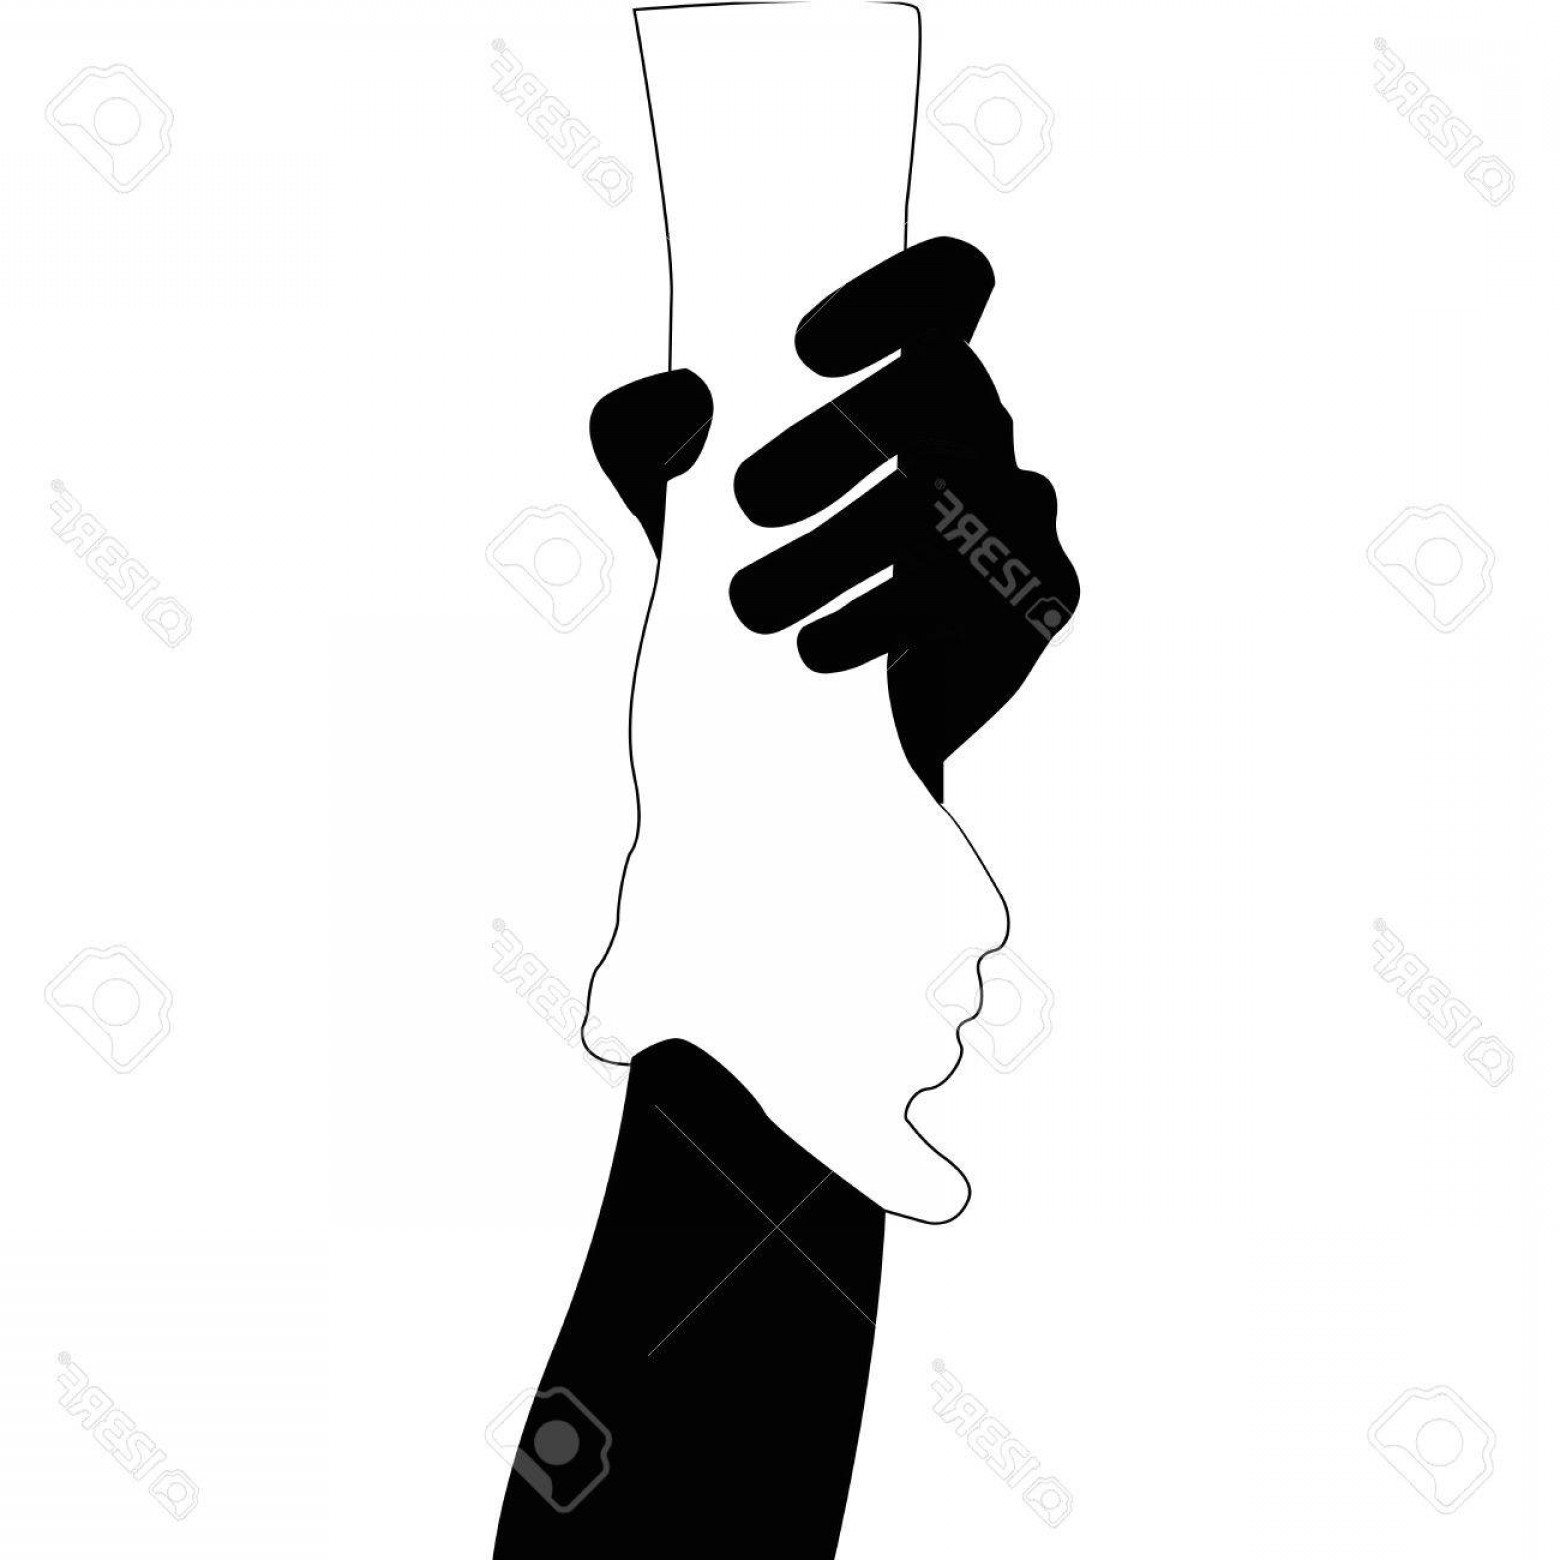 1560x1560 Photostock Vector Helping Hands Vector Black And White On White